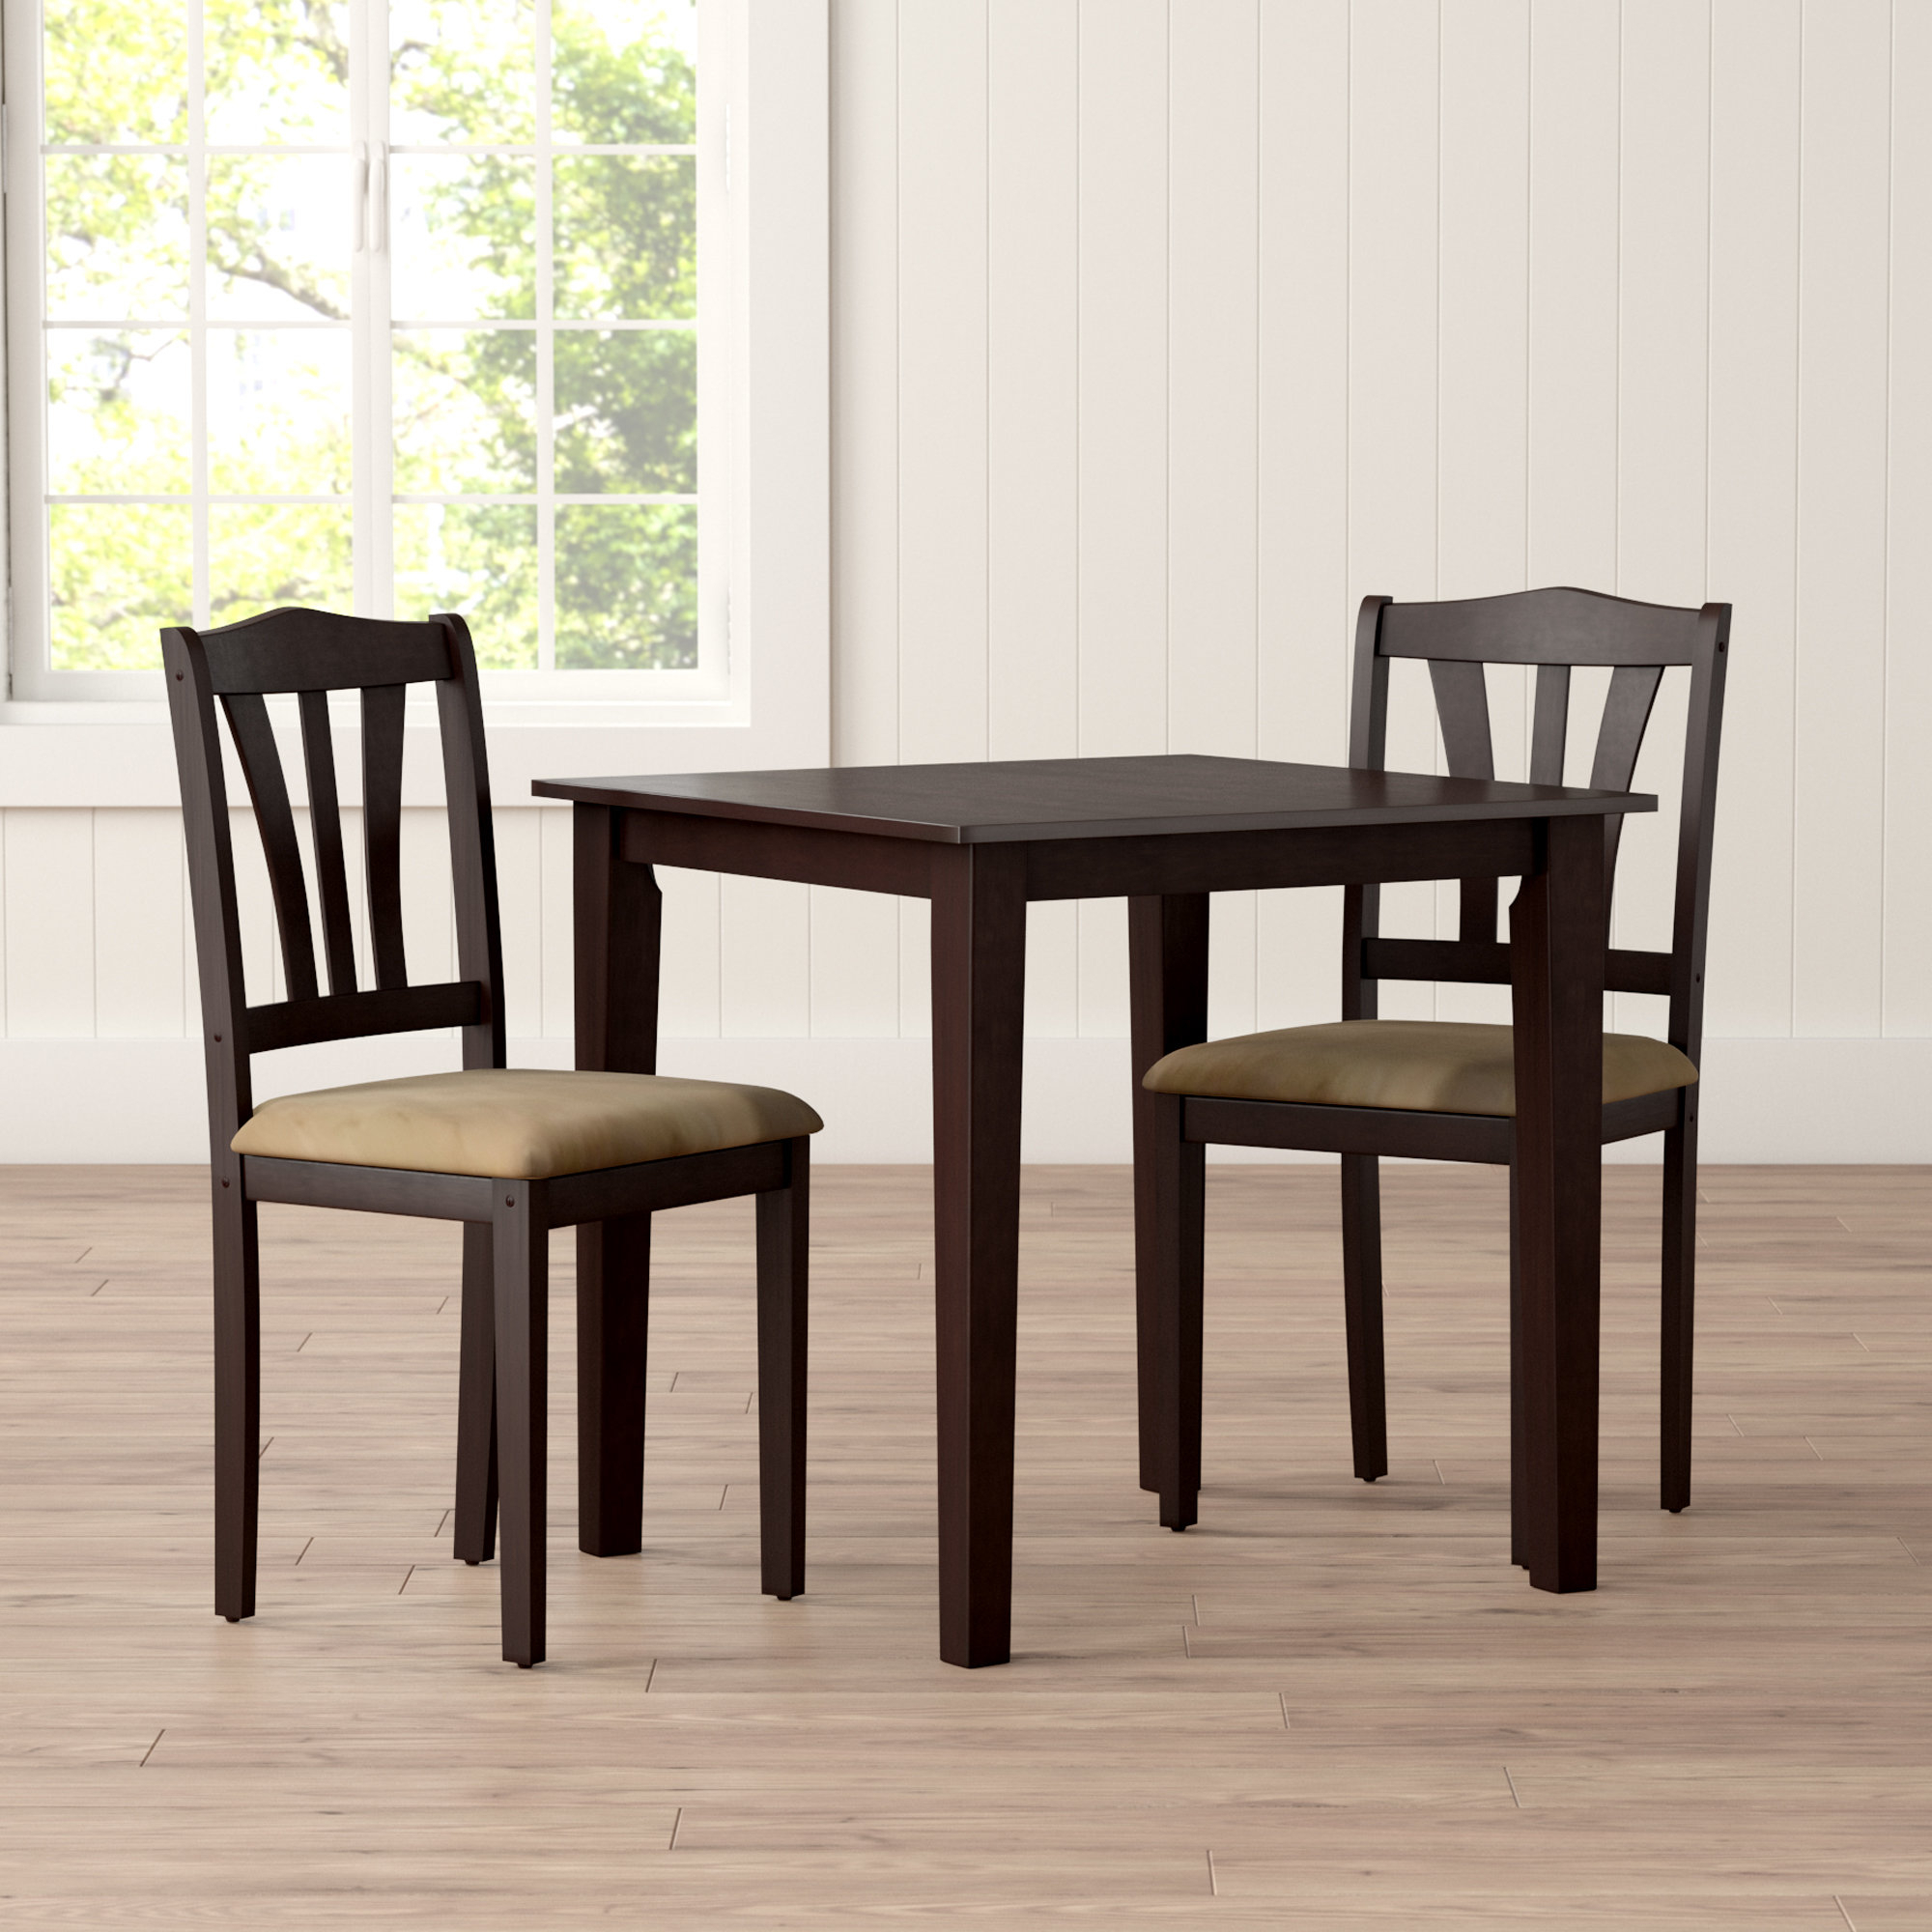 Wayfair Within Ryker 3 Piece Dining Sets (View 20 of 25)